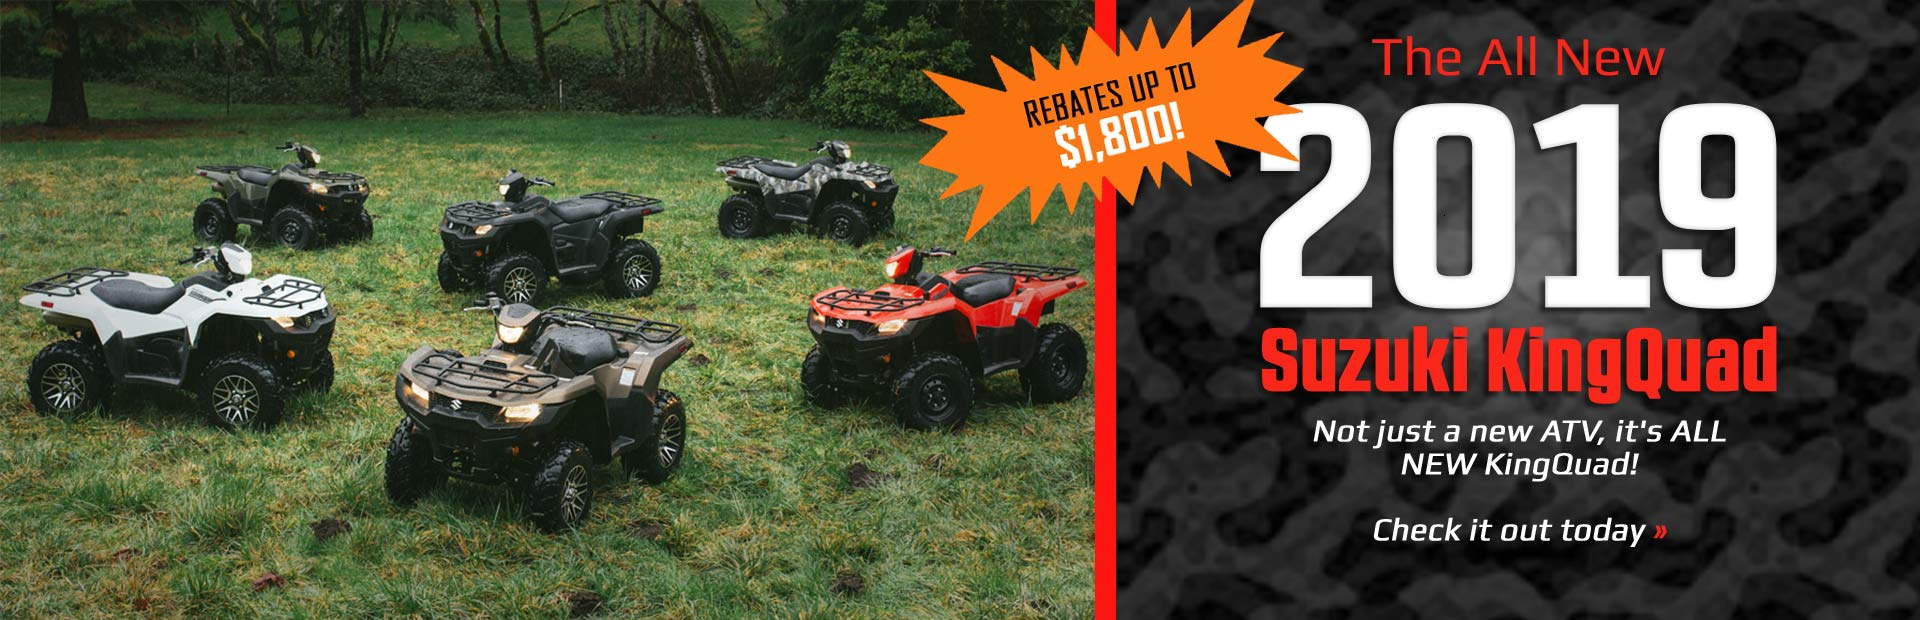 The All New 2019 Suzuki KingQuad: Click here for details.